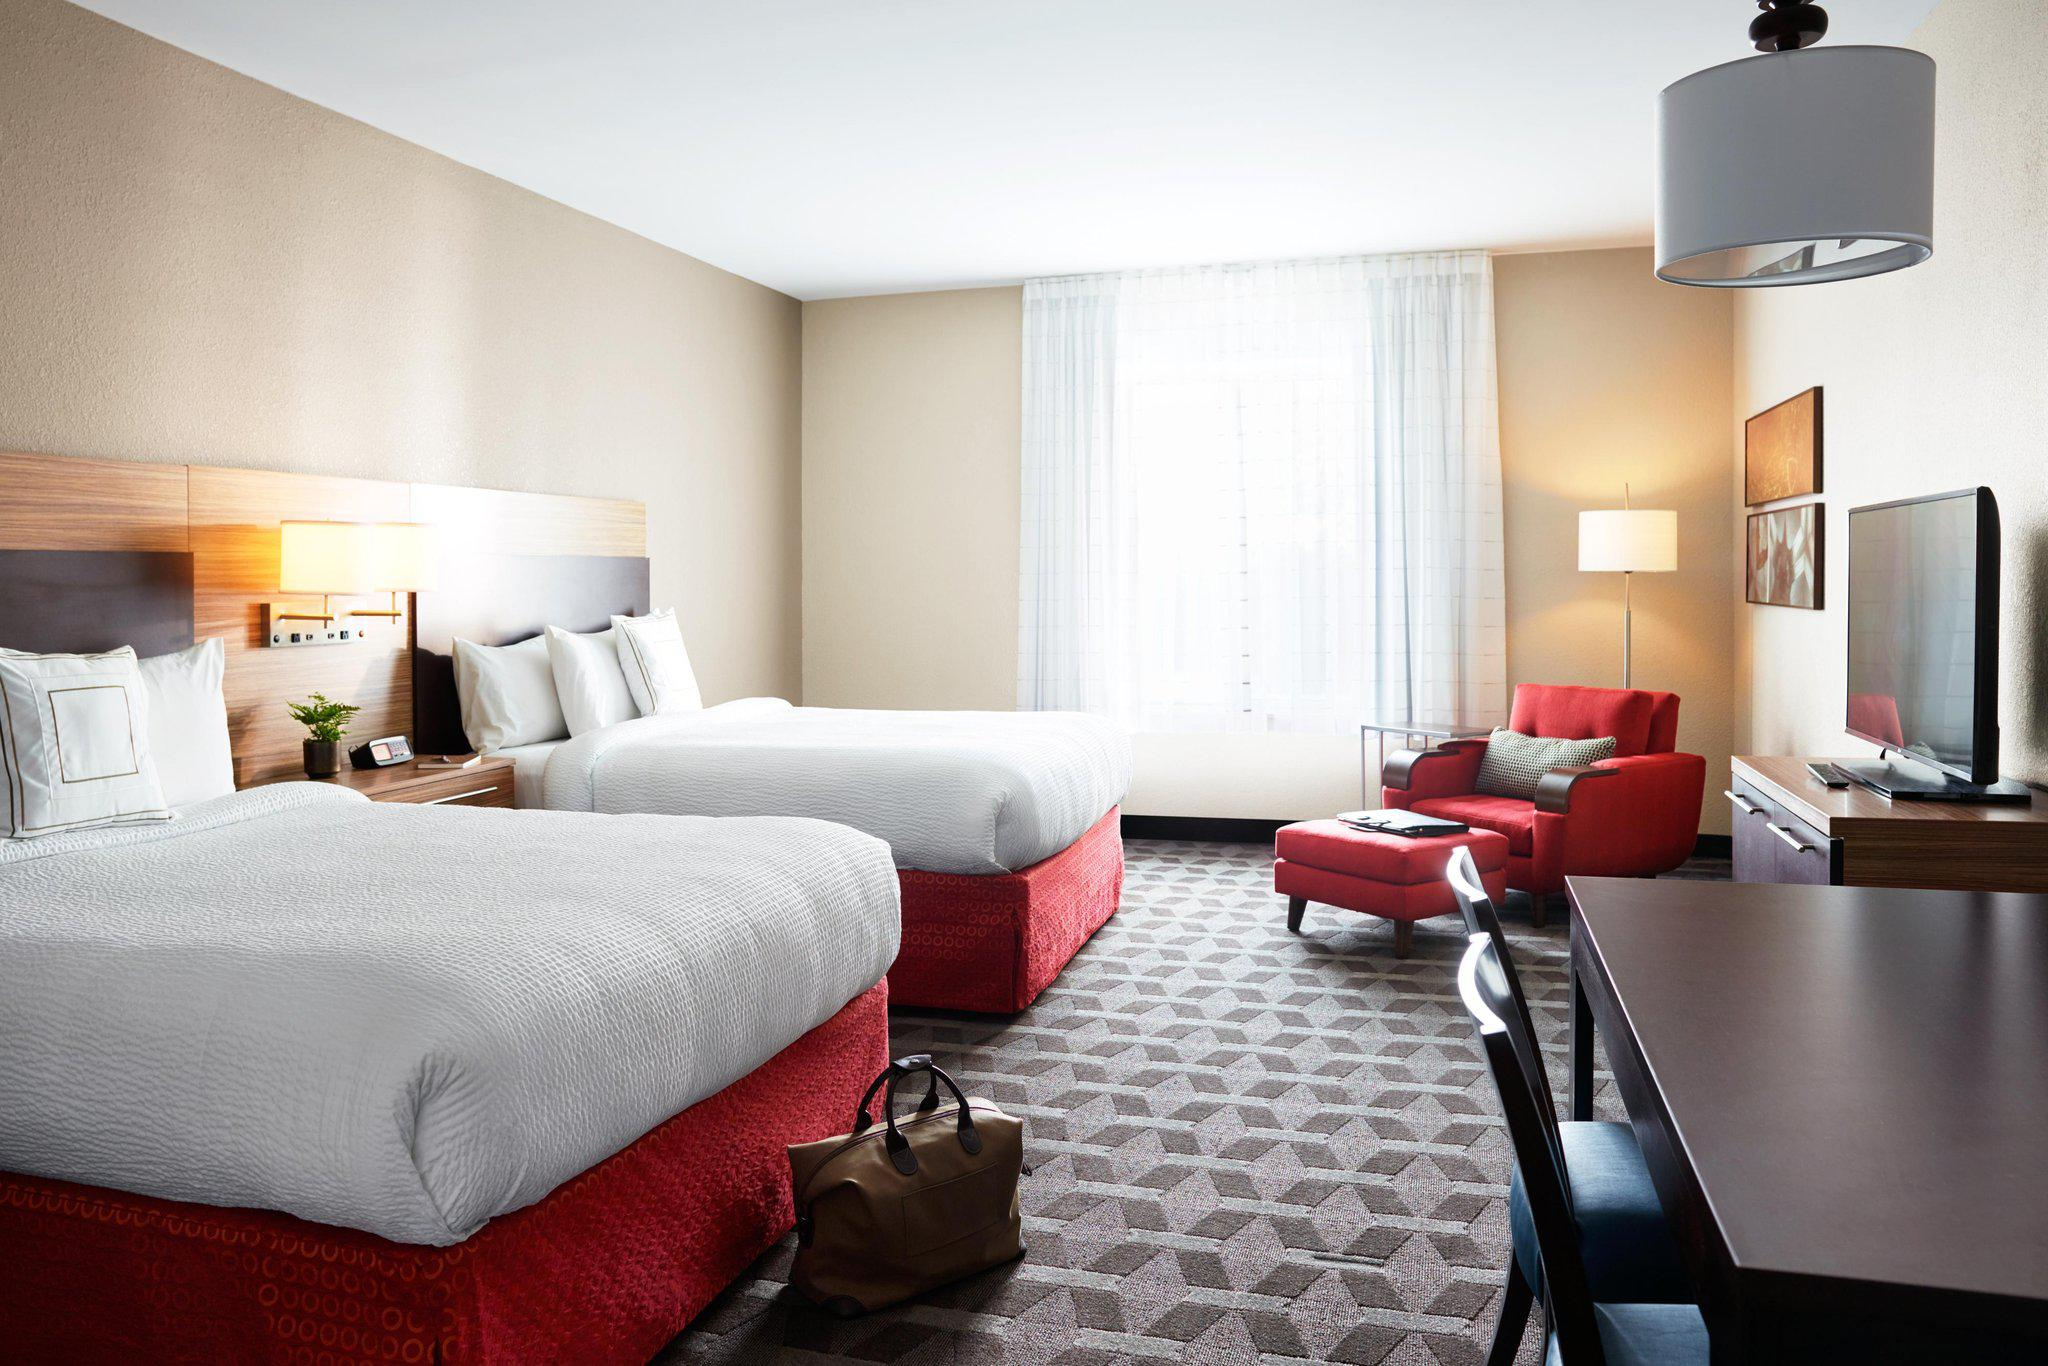 TownePlace Suites by Marriott Houston I-10 East